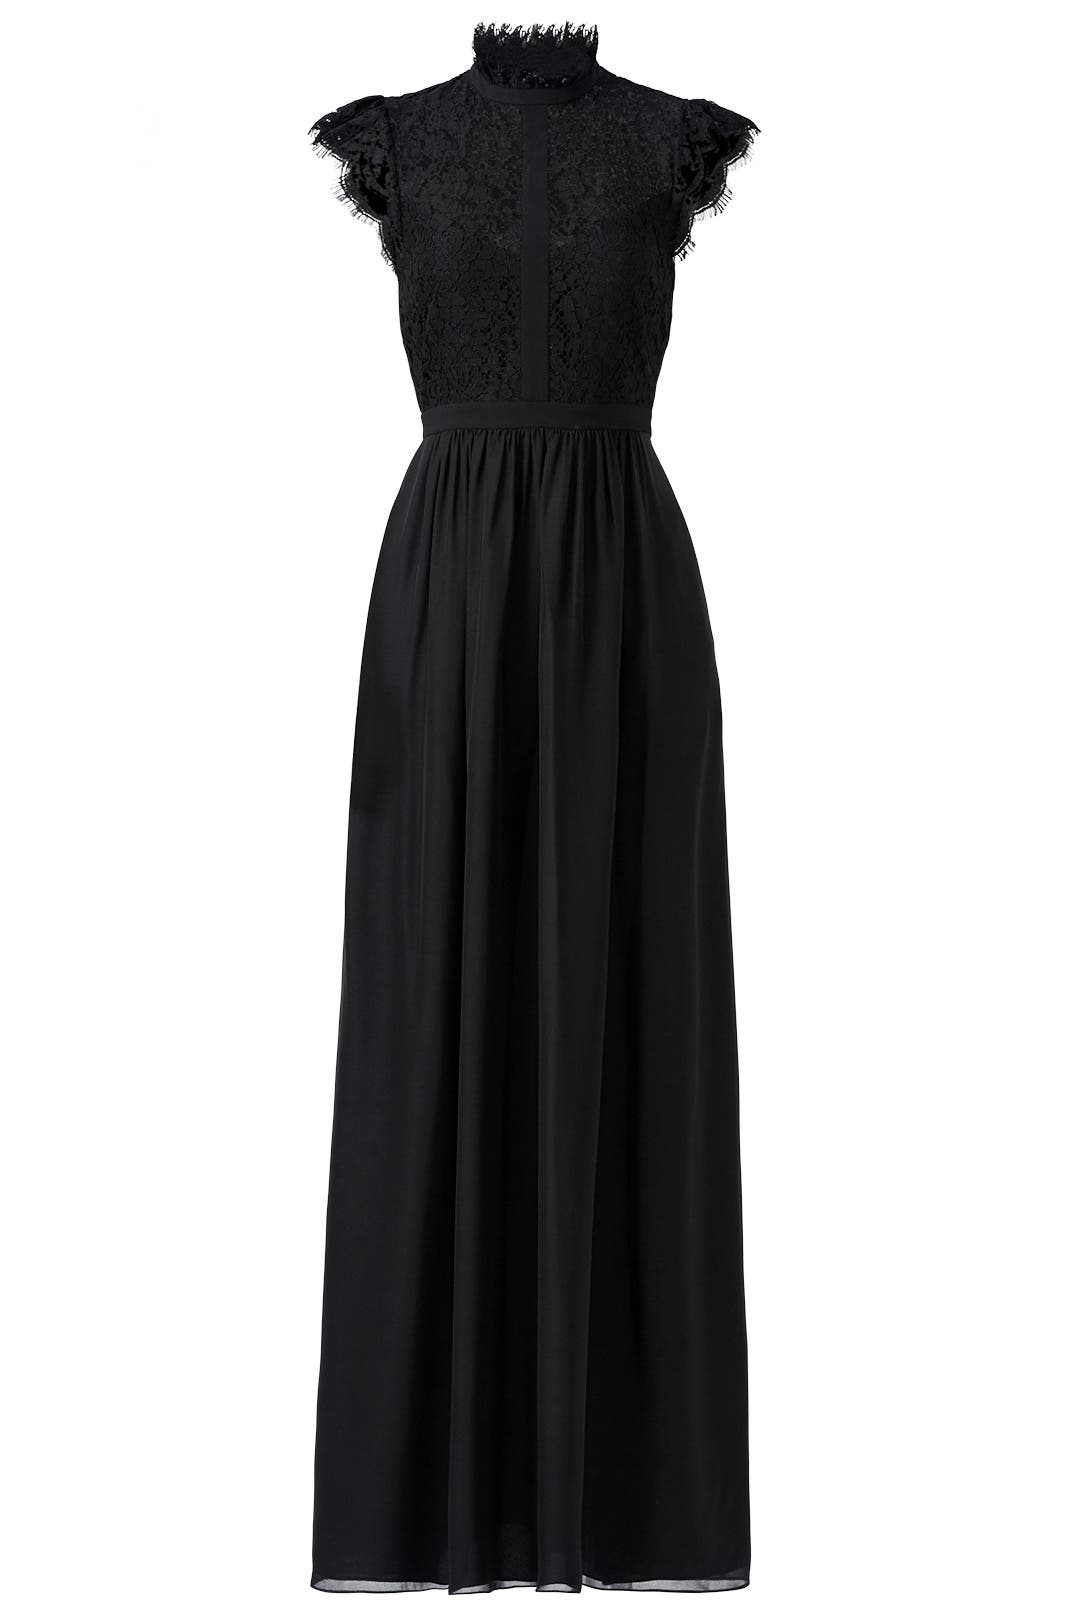 Black Lace Paneled Gown by Rachel Zoe for $90 - $100 | Rent the Runway